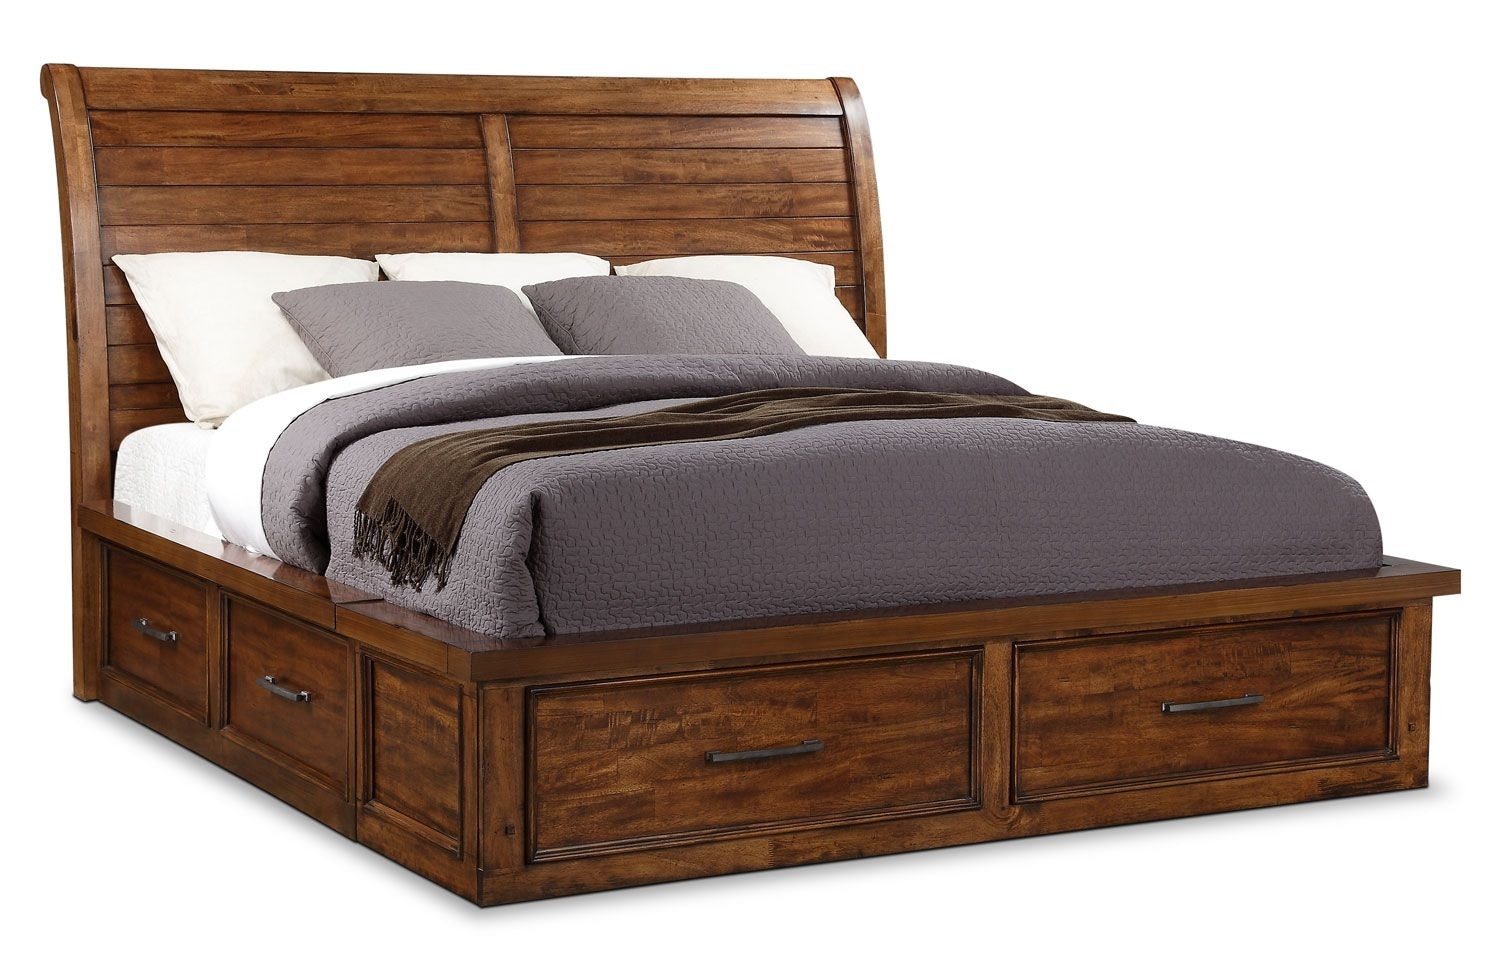 Sonoma Queen Storage Bed – Light Brown